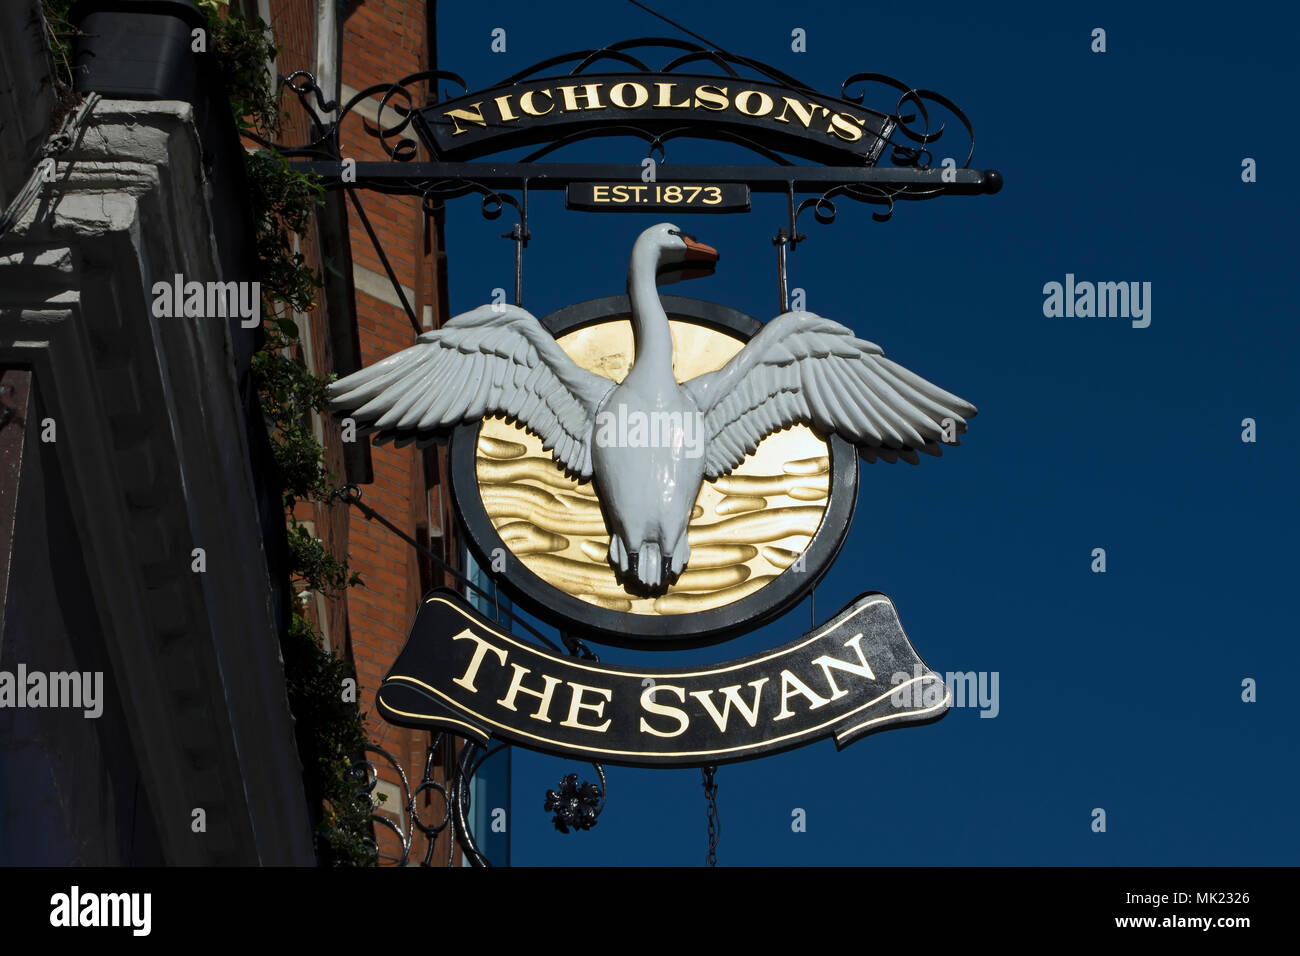 Nicholson Pubs High Resolution Stock Photography and Images   Alamy